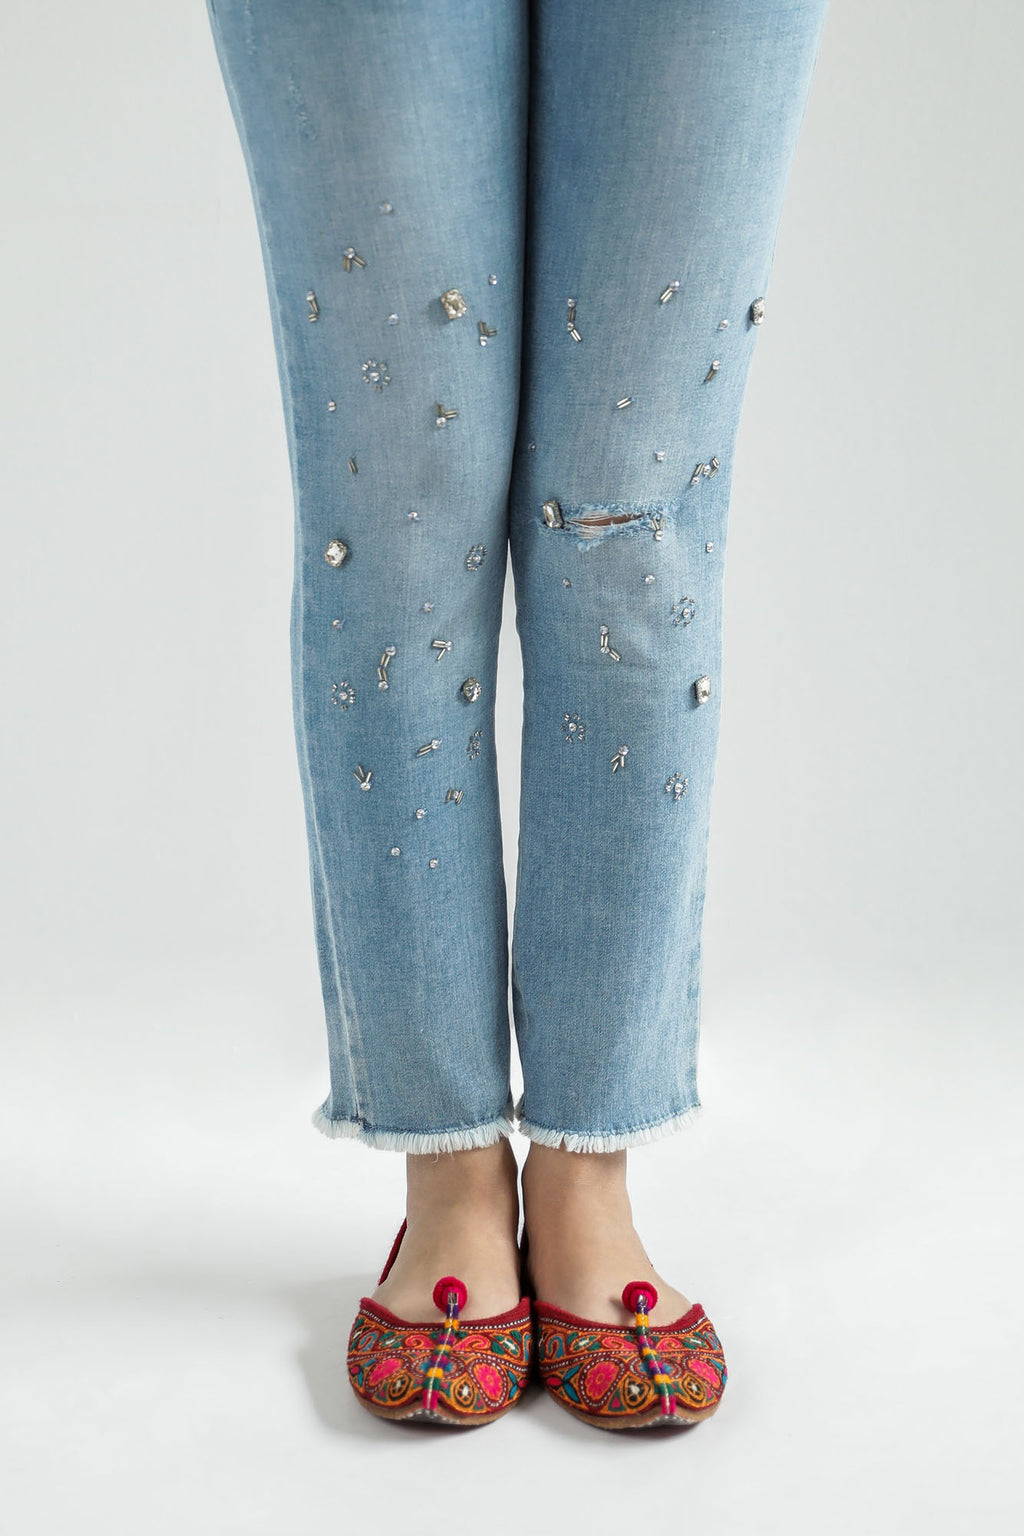 Fusion Jeans (WBF201706) - Ethnic by Outfitters